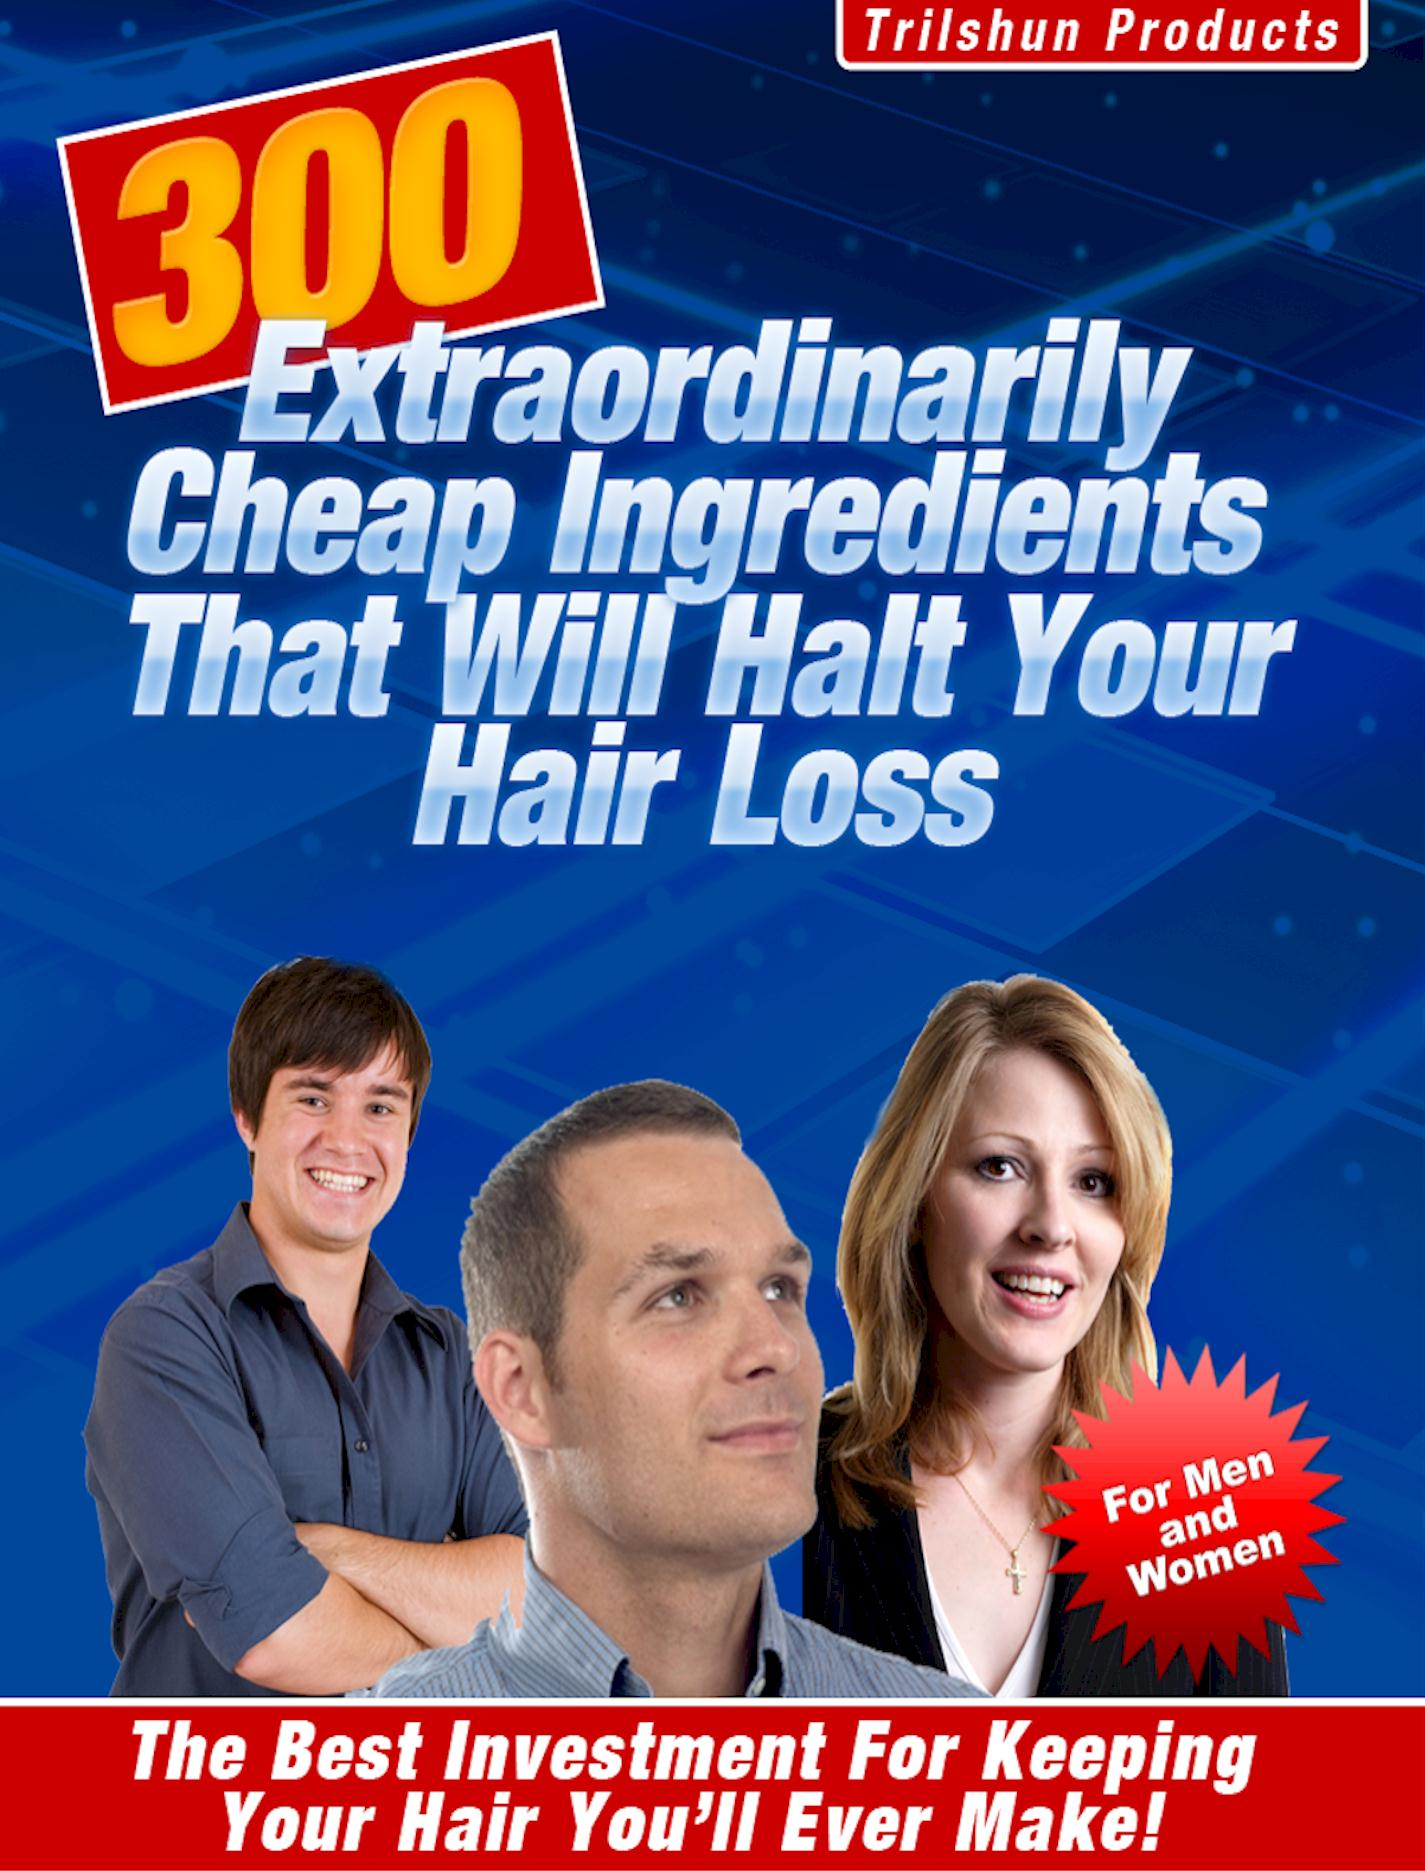 300 Extraordinarily Cheap Ingredients That Will Halt Your Hair Loss By: James Merritt